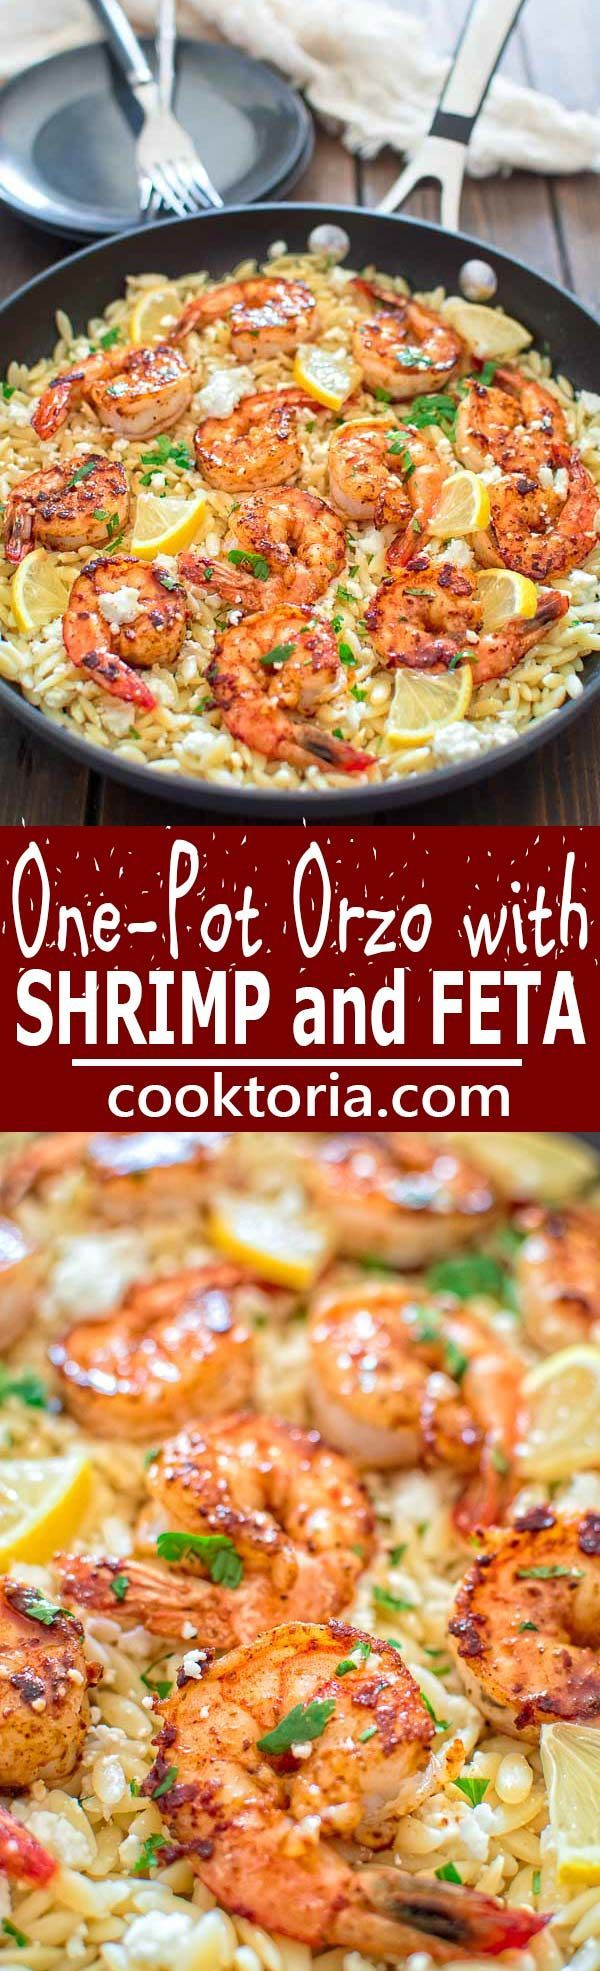 Very easy to make, yet unbelievably delicious, this One Pot Orzo with Shrimp and Feta is worthy of a special occasion! ❤ COOKTORIA.COM